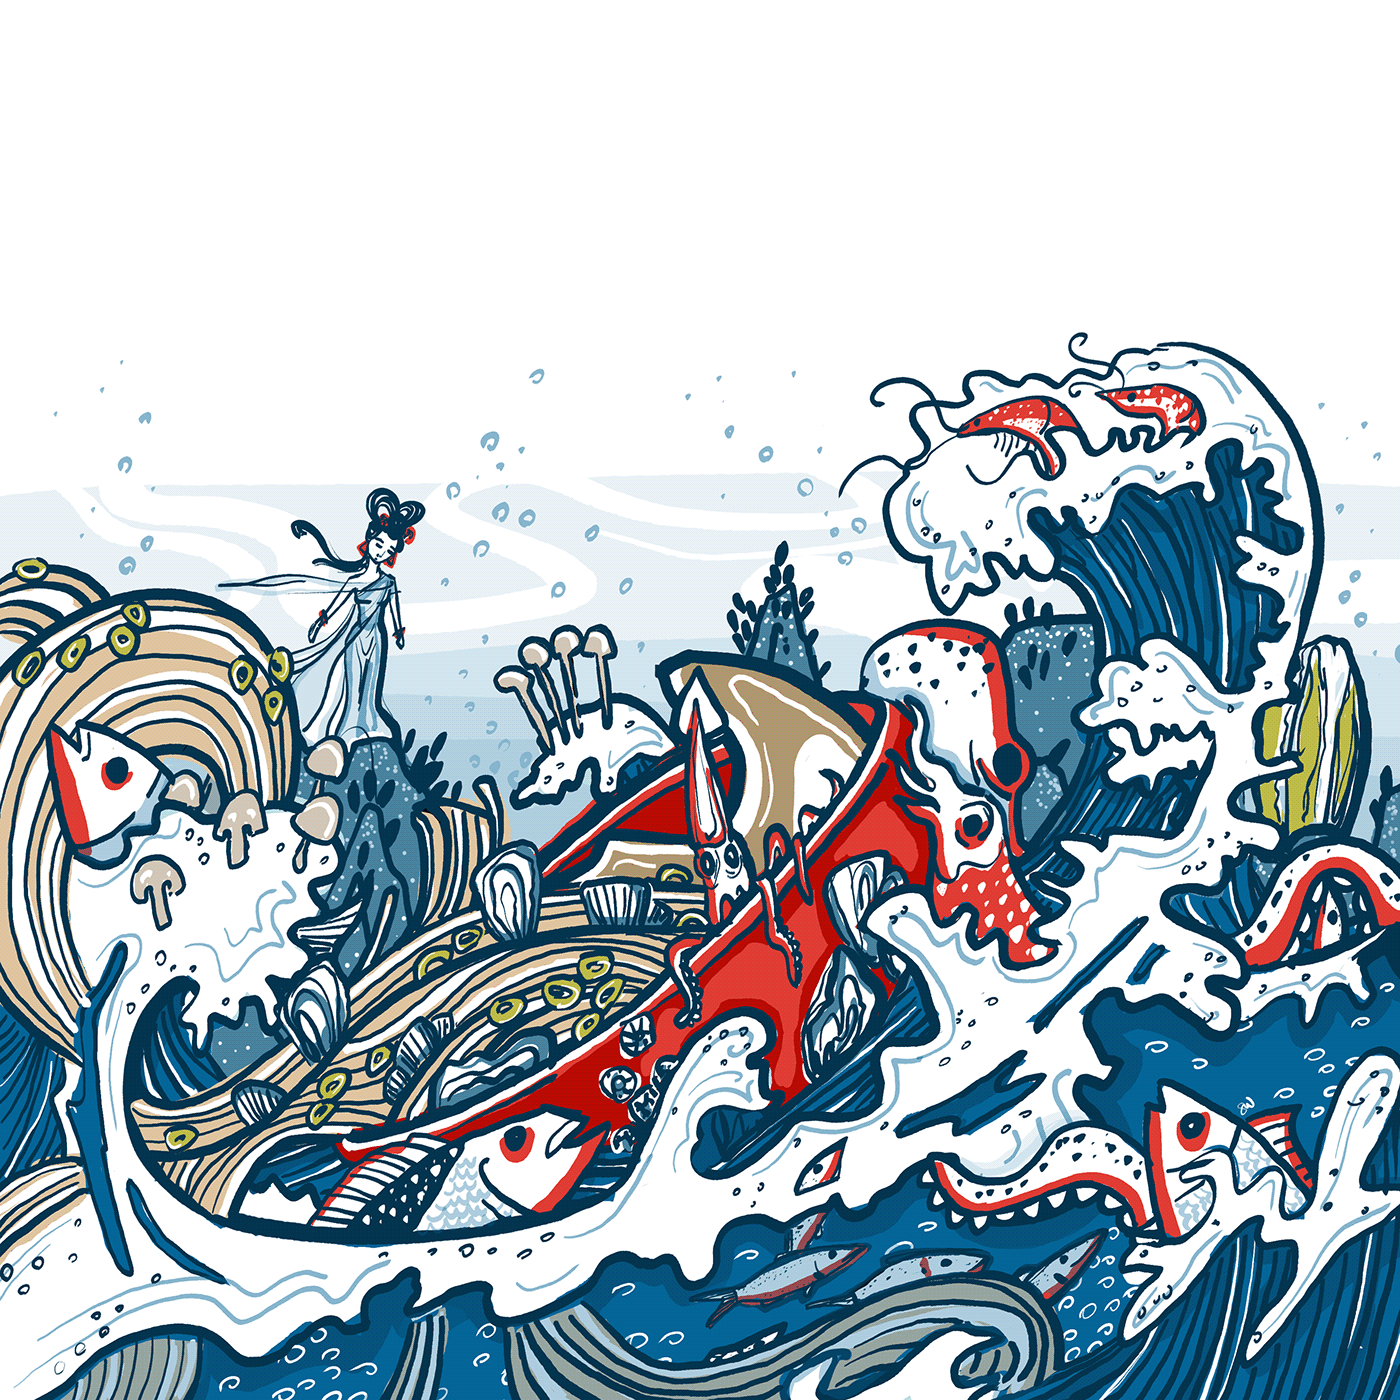 Seascape of goddess looking down as sea creatures spill from noodle bowl